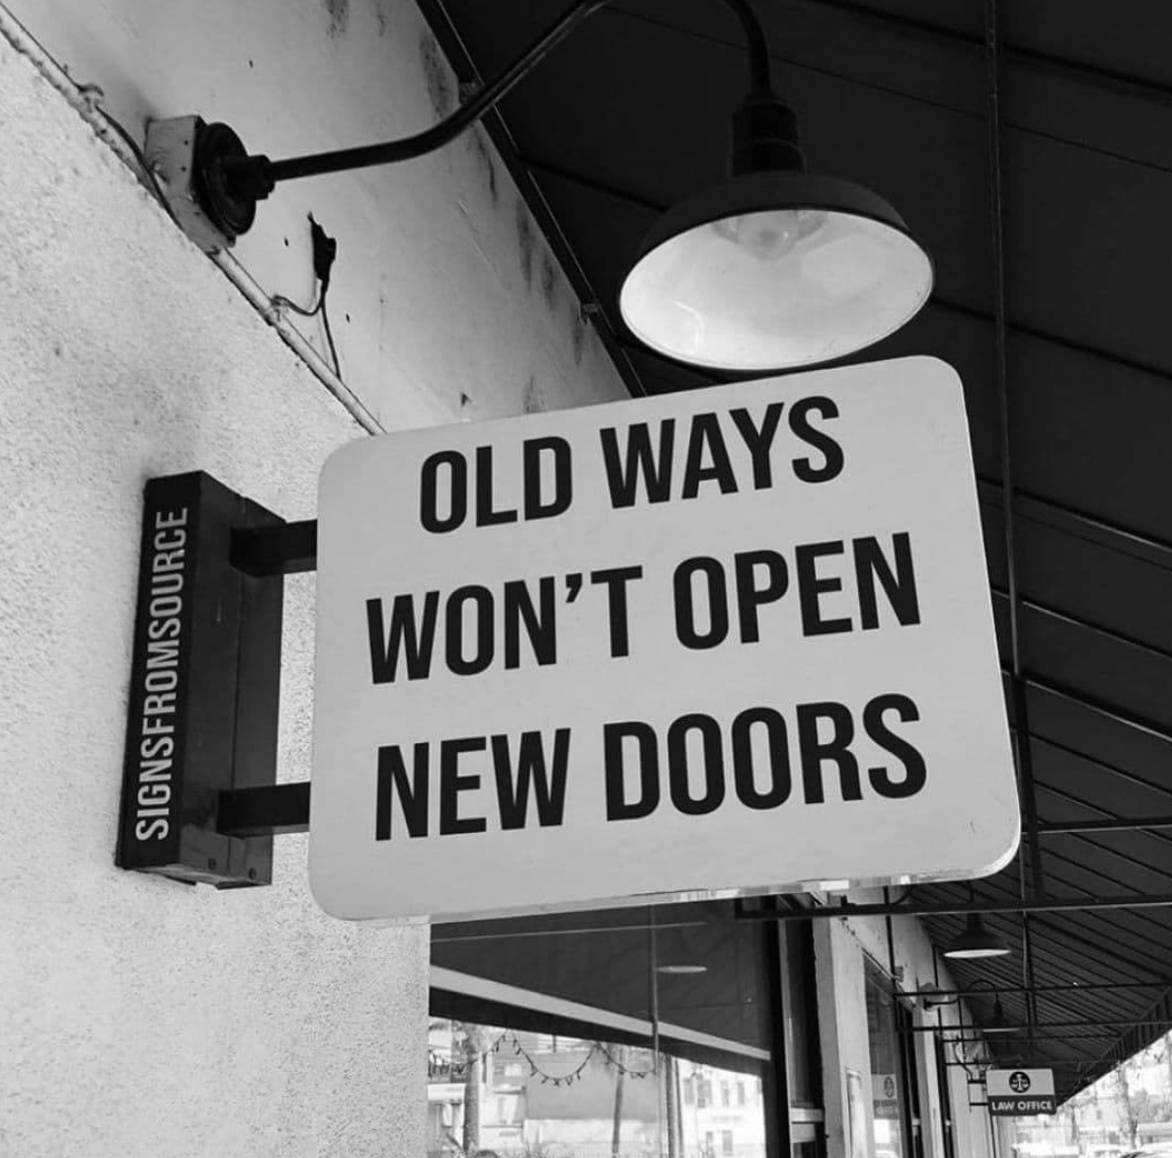 [Image] Old ways won't open new doors. Dare to change for the better. Find new ways.